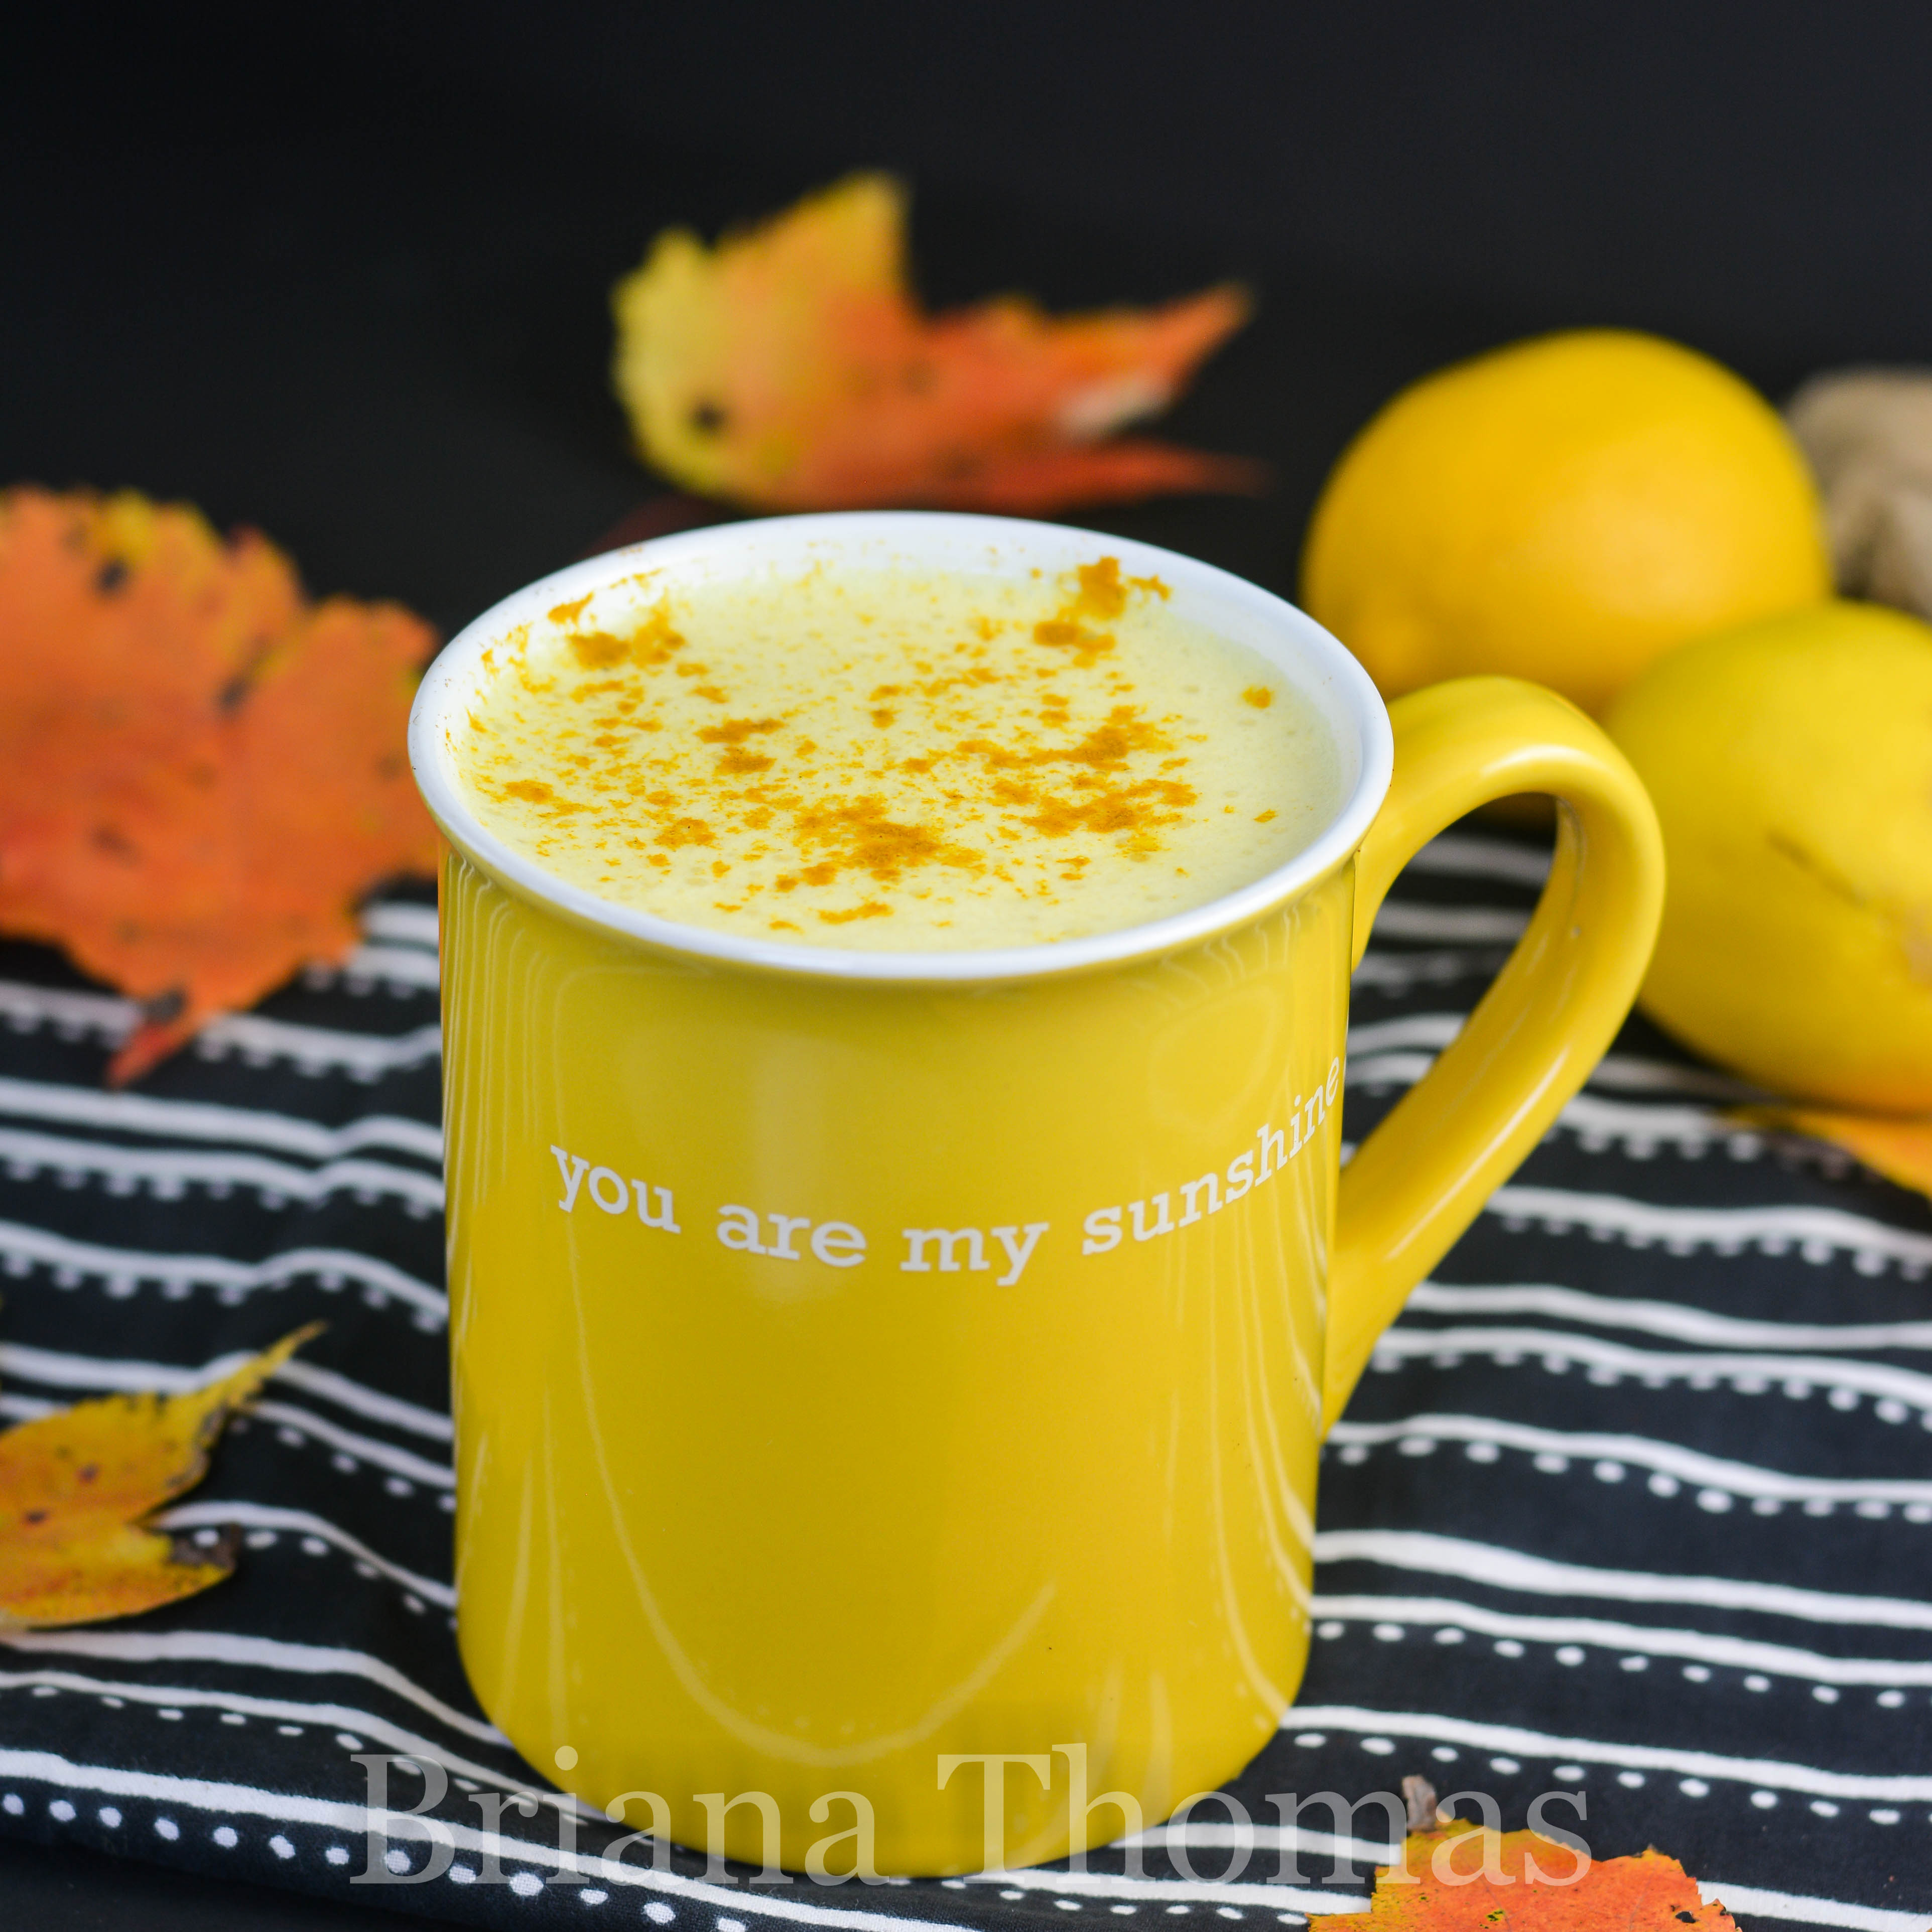 This is one delicious detox! Lemon, turmeric, and ginger combine with Bulletproof elements in this warm Velvety Golden Detox! Sugar free, allergy friendly